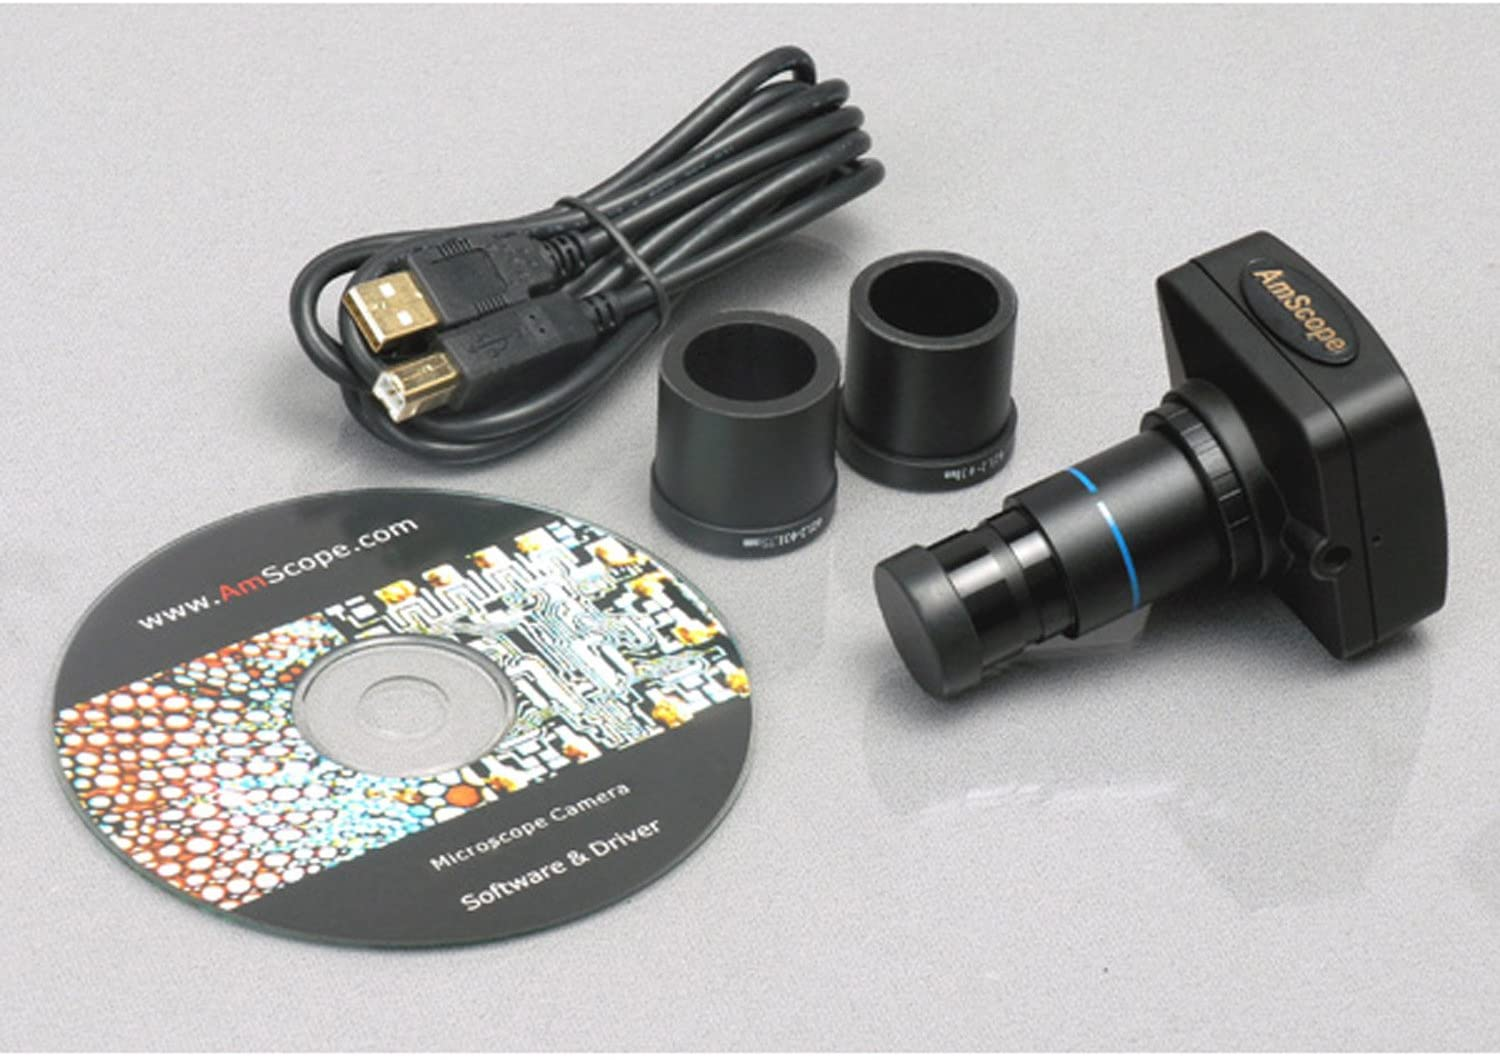 and Software 20x//50x//100x Magnification 17mm Field of View 3MP Camera with Reduction Lens AmScope H2510-3M Digital Handheld Stand Measuring Microscope Includes Pen Light